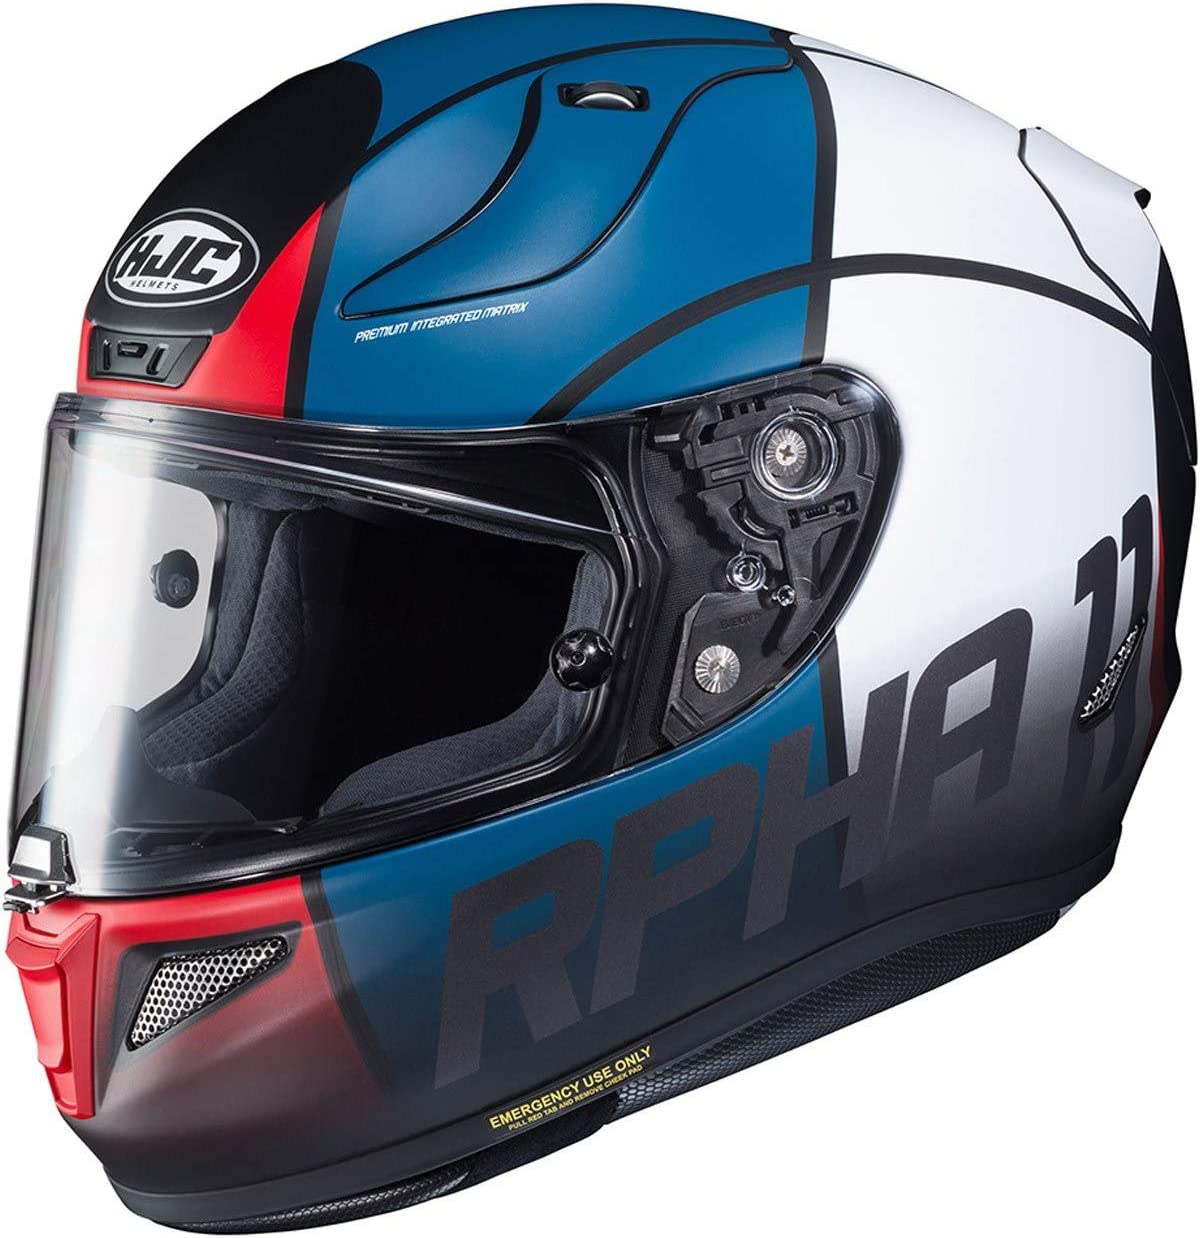 RPHA 11 Motorcycle Helmet Quintain MC21SF Red White Blue XS HJC